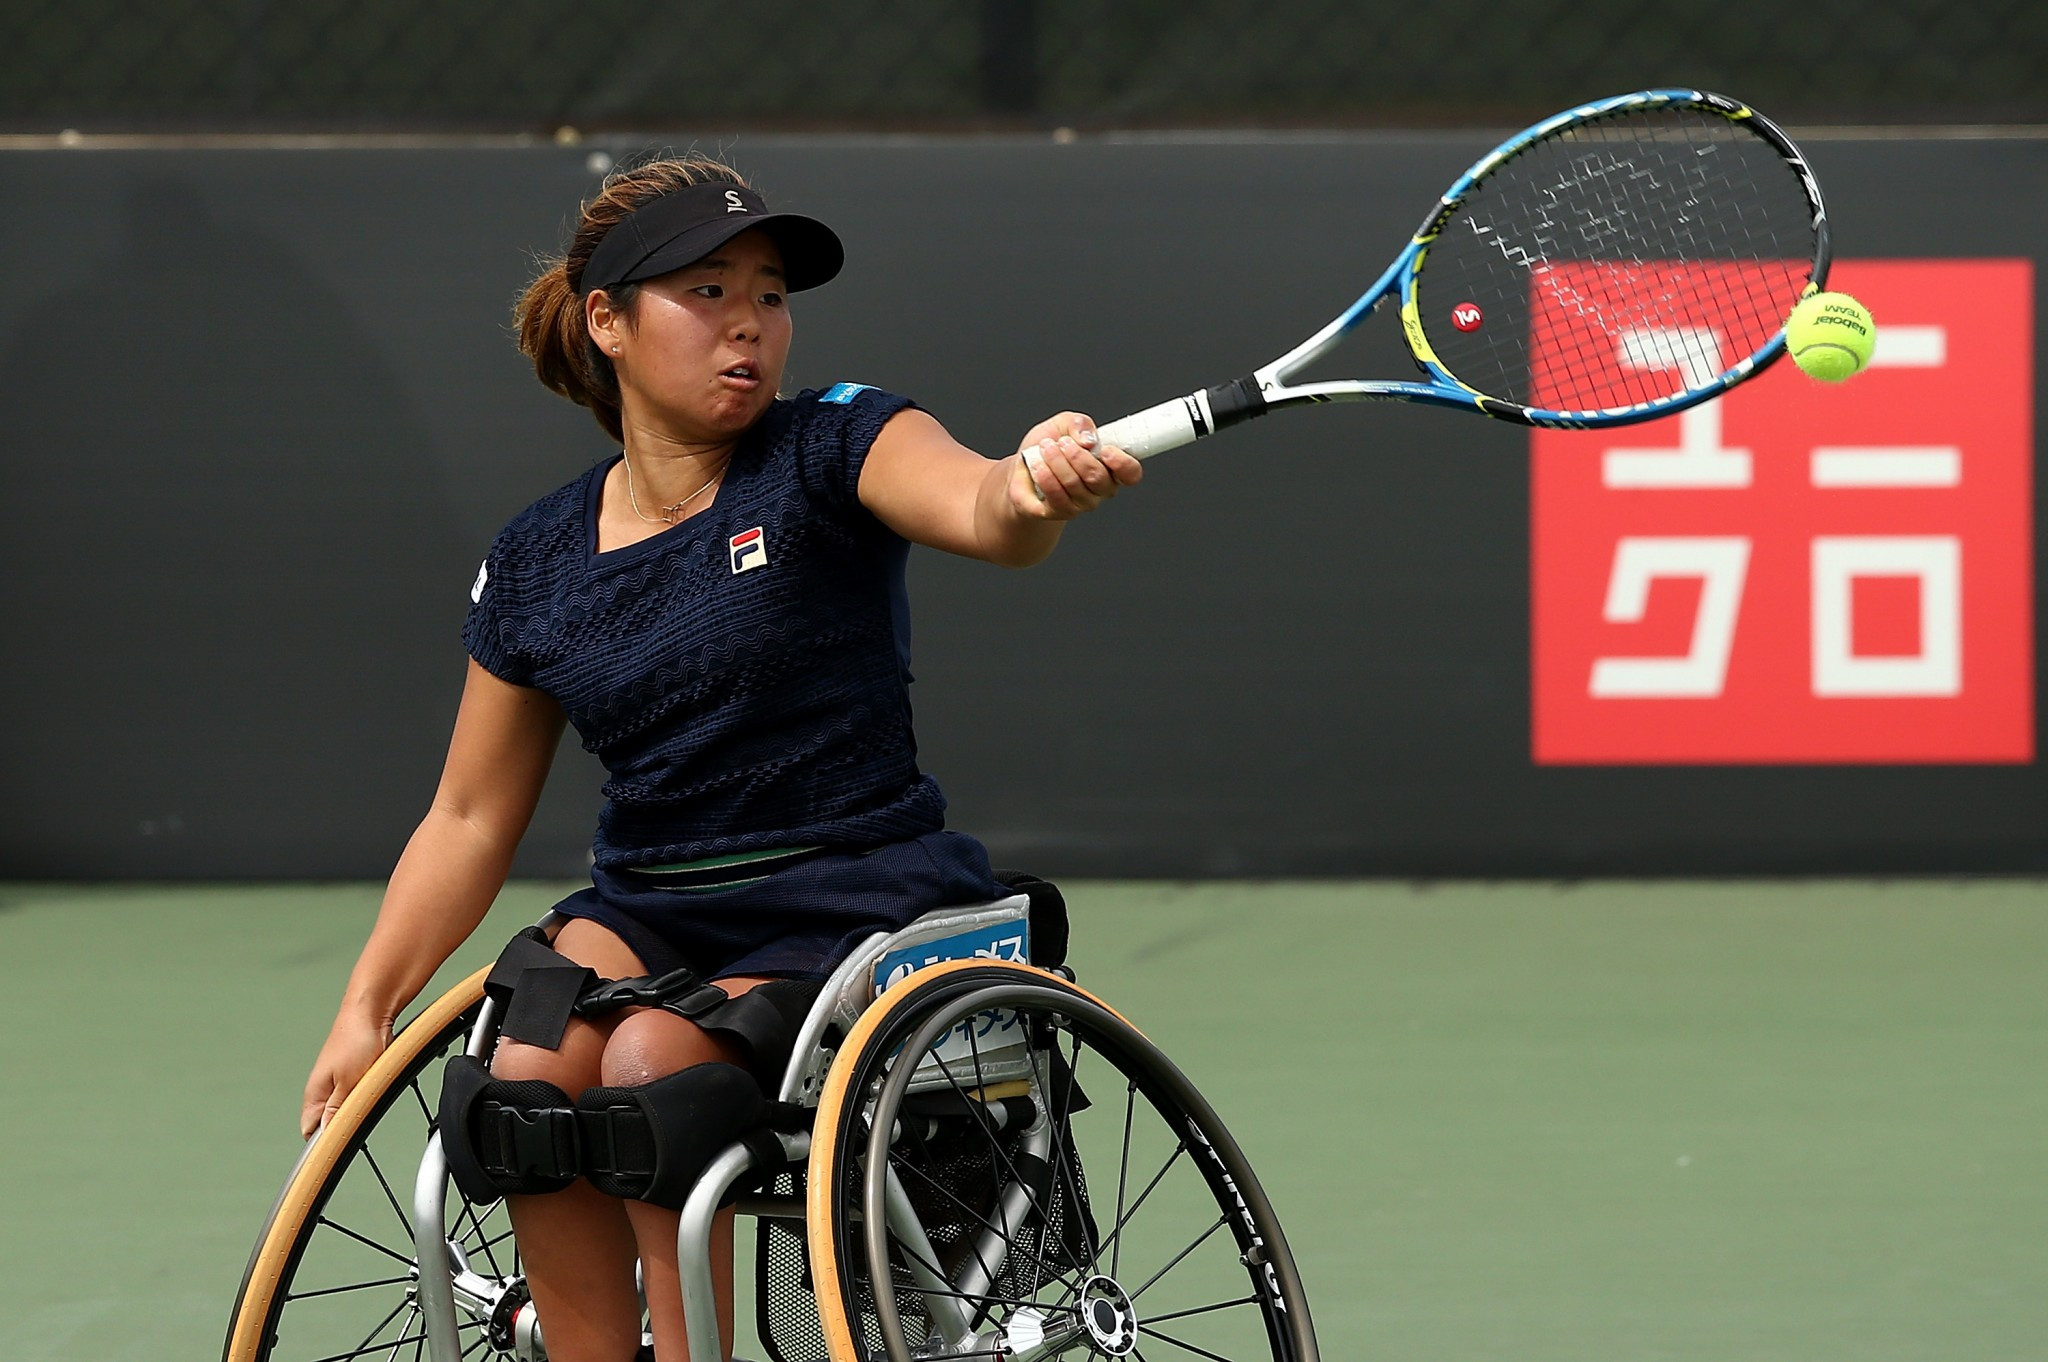 Japan and The Netherlands win women's matches at Wheelchair Tennis World Team Cup